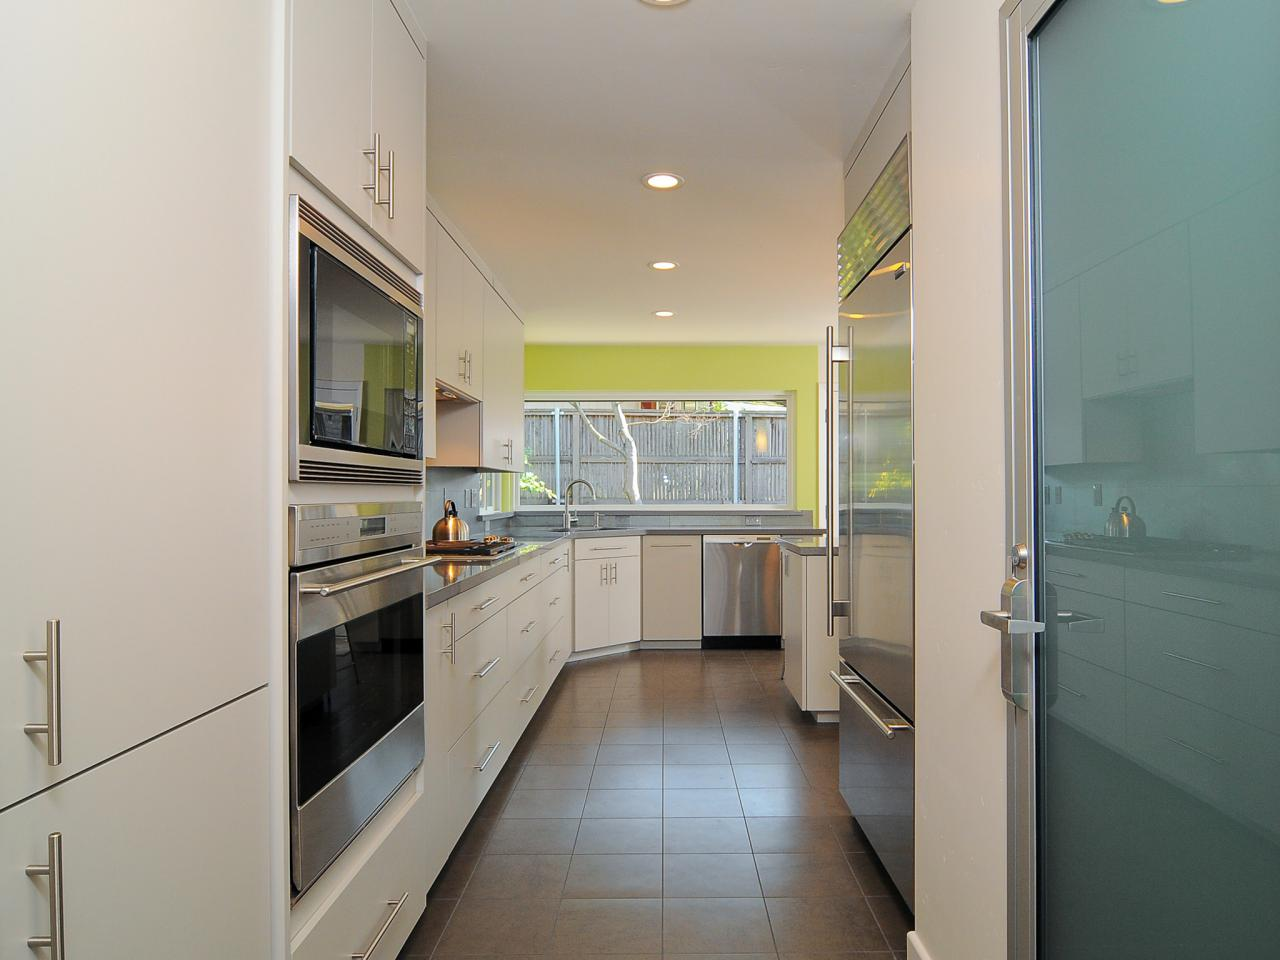 lovely Pictures Of Galley Kitchen Remodels #4: Galley Kitchen Remodeling